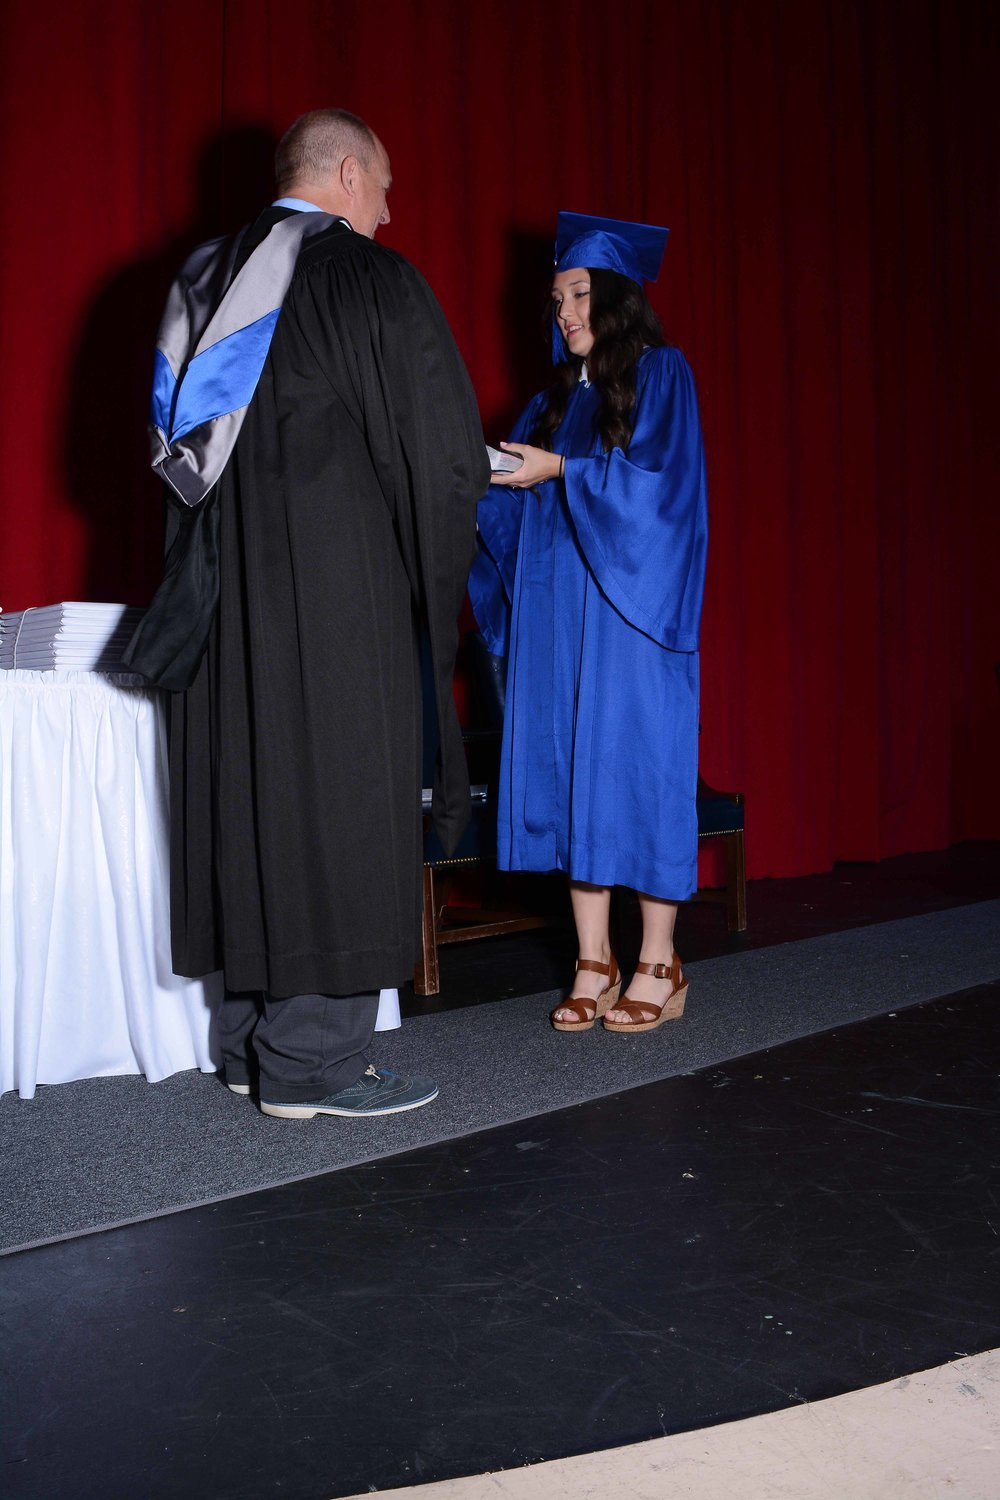 May14 Commencement24.jpg